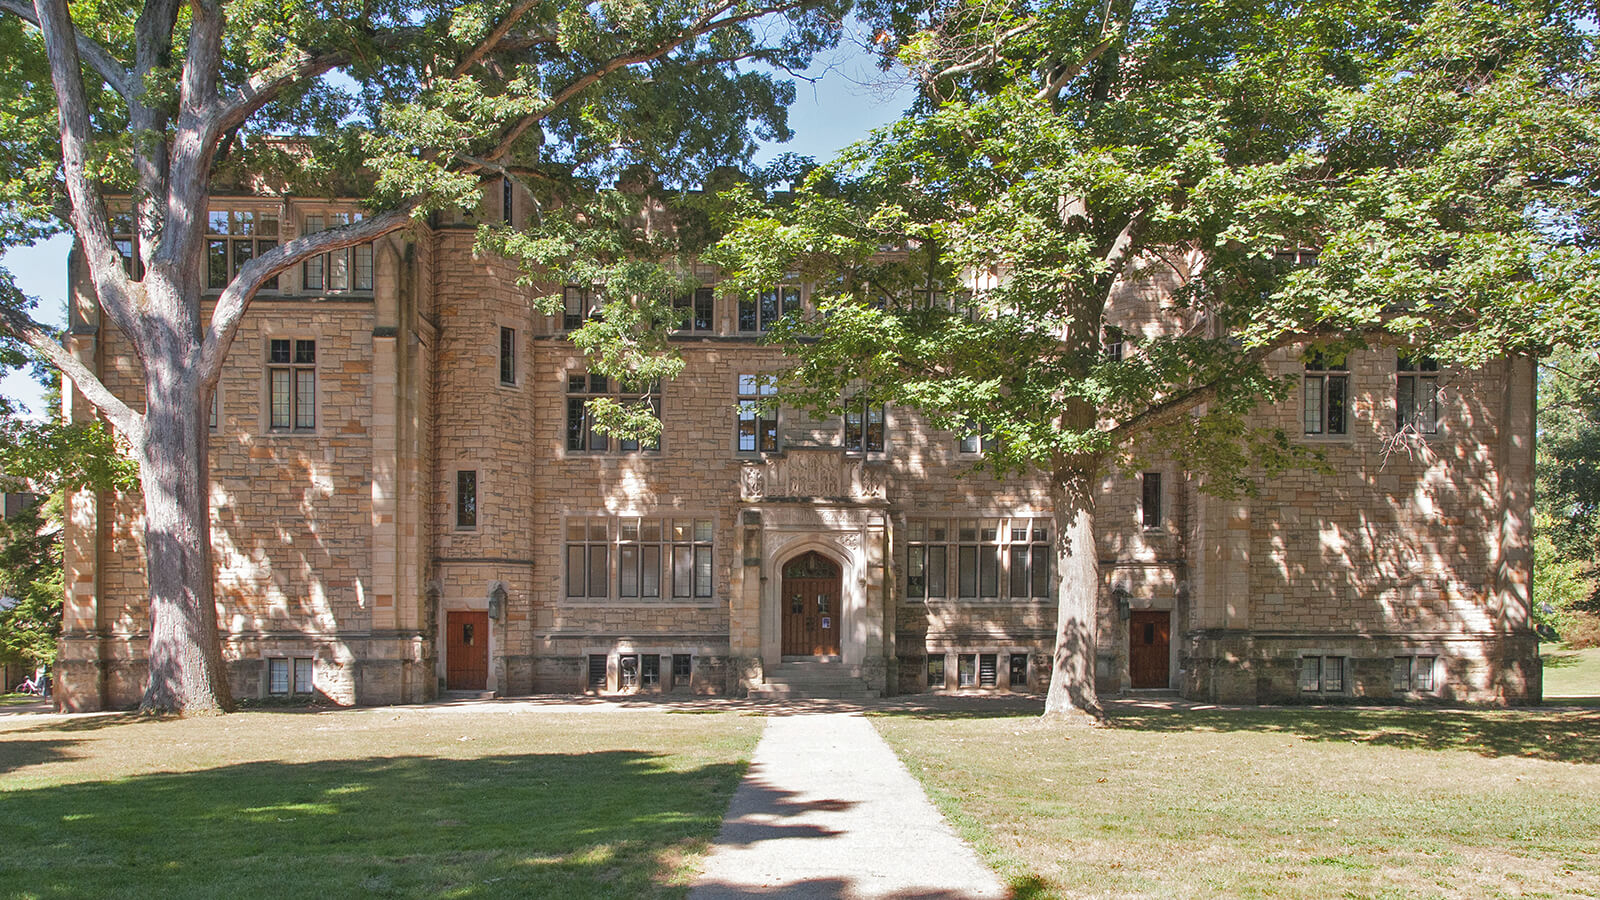 An image of a building on the Kenyon College campus.